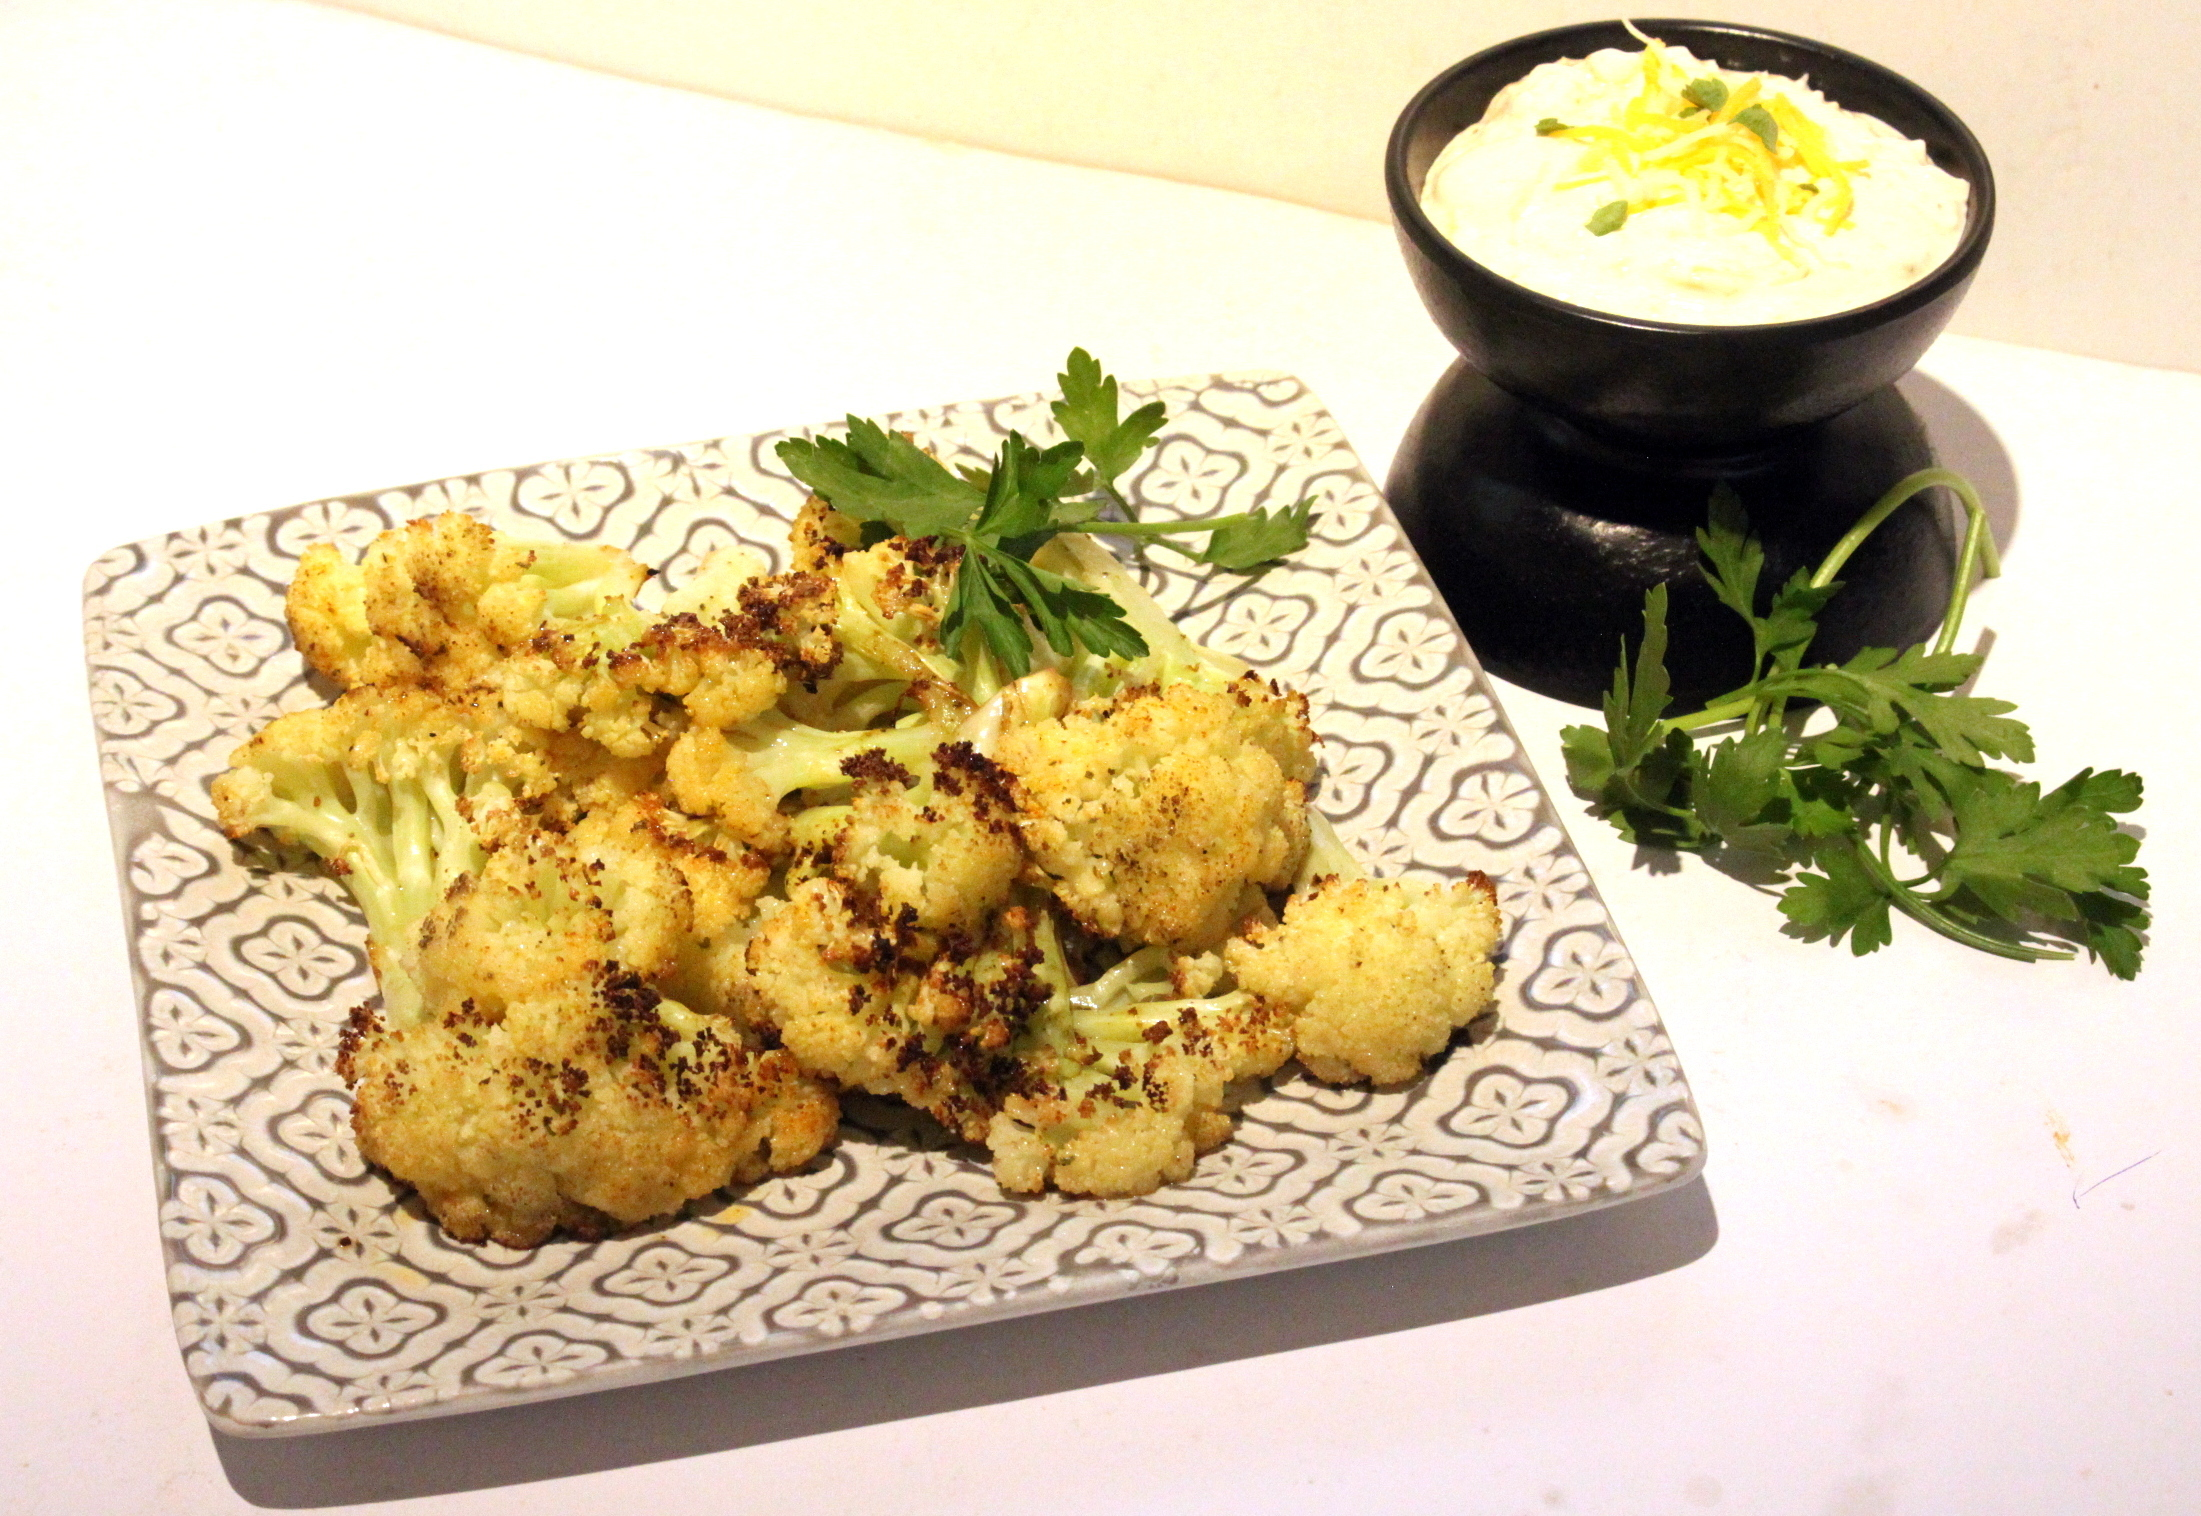 Geroesteter Blumenkohl mit Kaesedip – Roasted Cauliflower with Cheese Dip